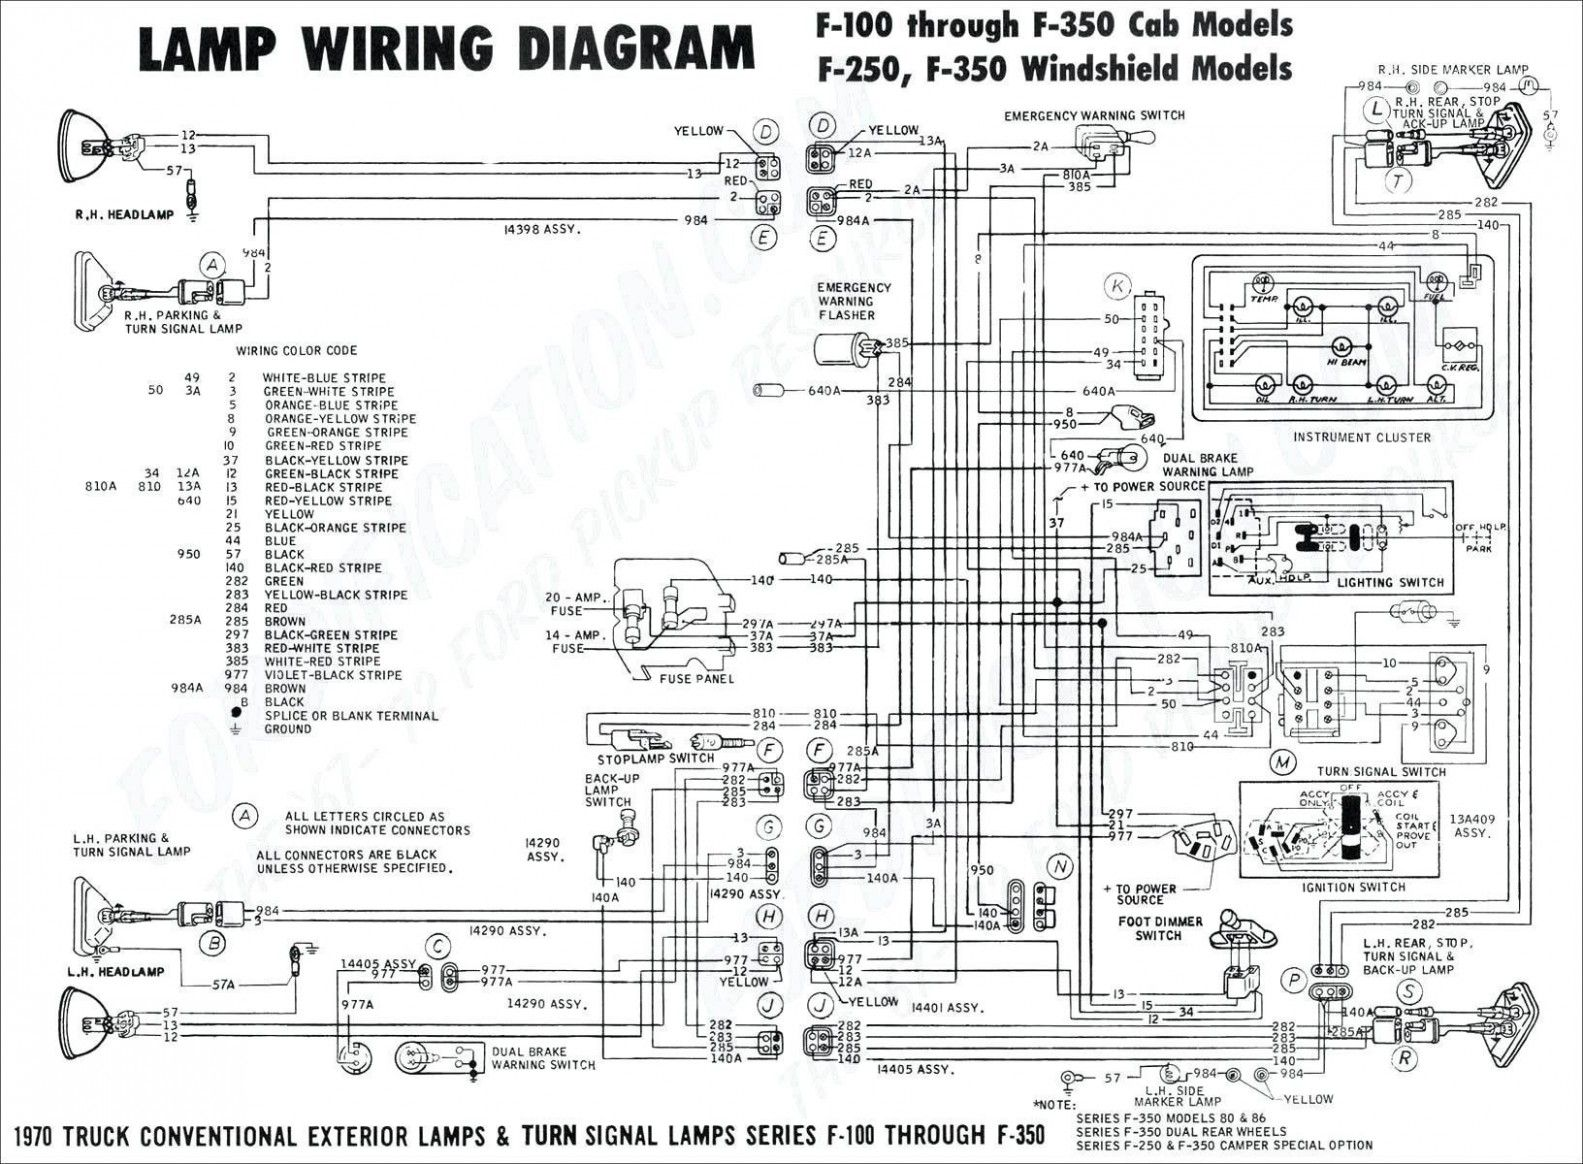 Engine Diagram 5 Jetta Yellow Engine Diagram 5 Jetta